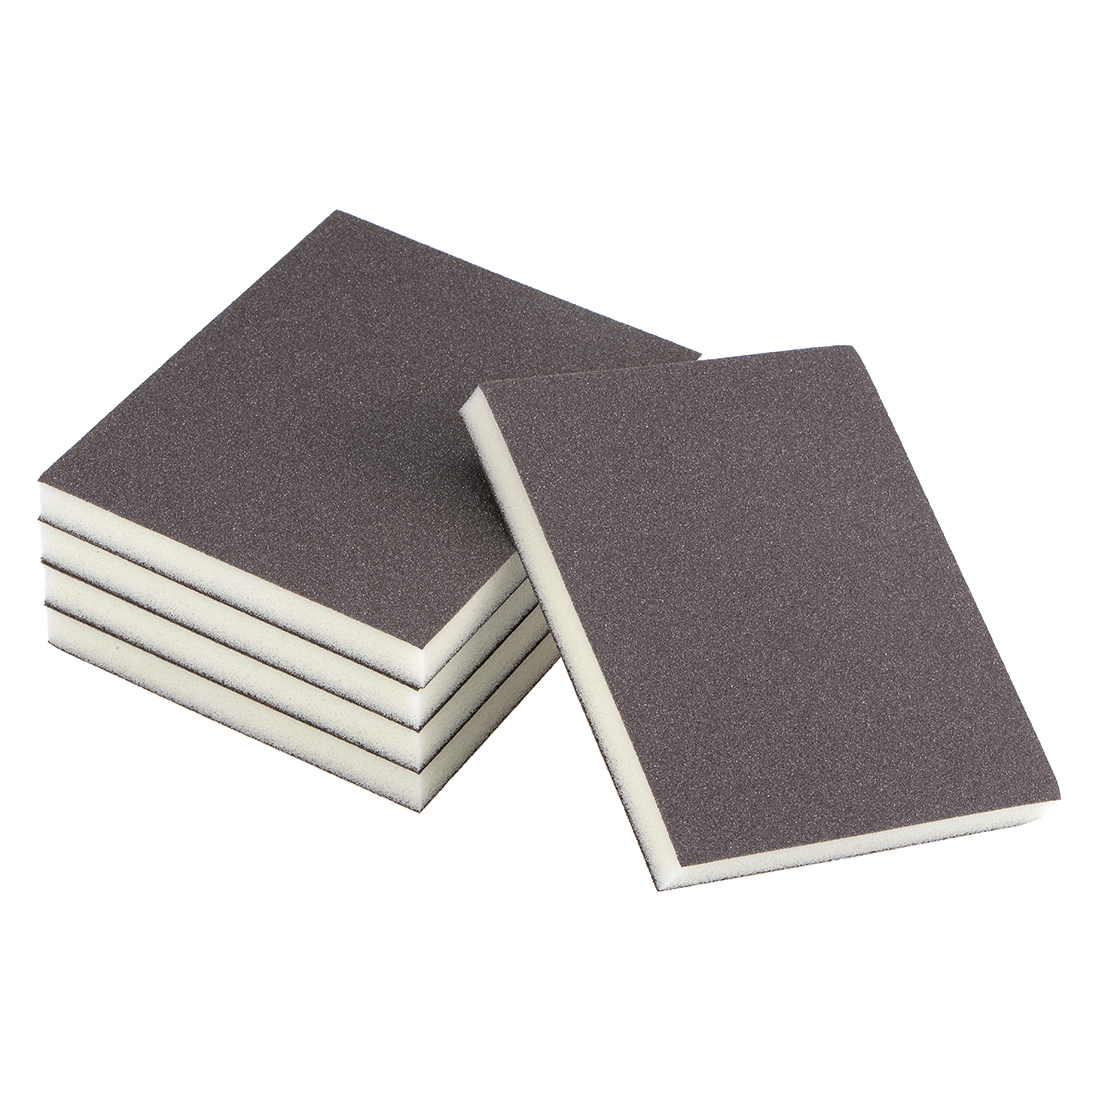 Uxcell 5pcs Sanding Sponge Sanding Block Pad 4.7 X 3.9 X 0.5inch Brown For Wood Paint Metal Kitchen Plastic Or Drywall